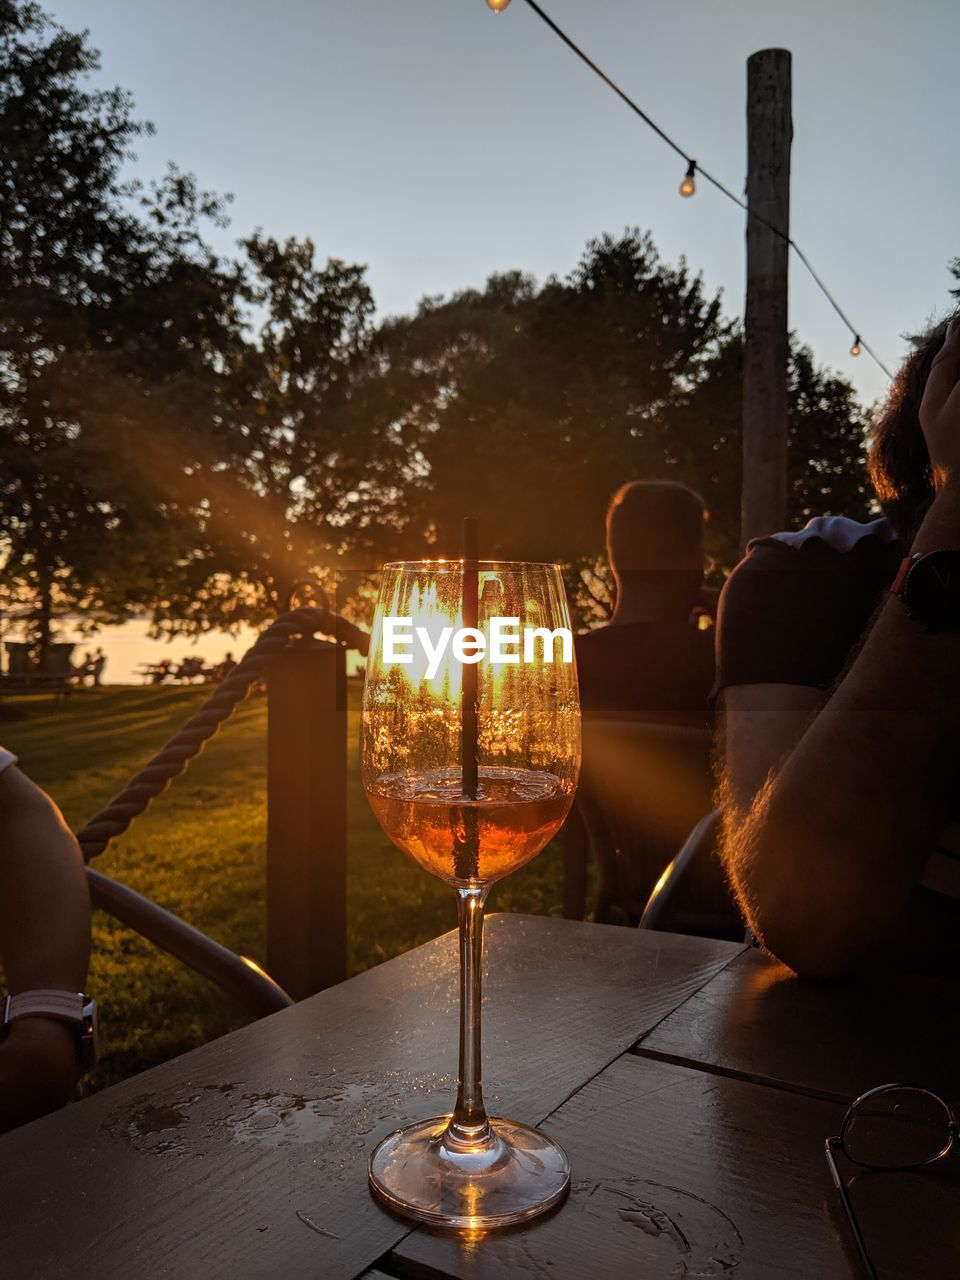 PEOPLE SITTING AT RESTAURANT BY GLASS DURING SUNSET